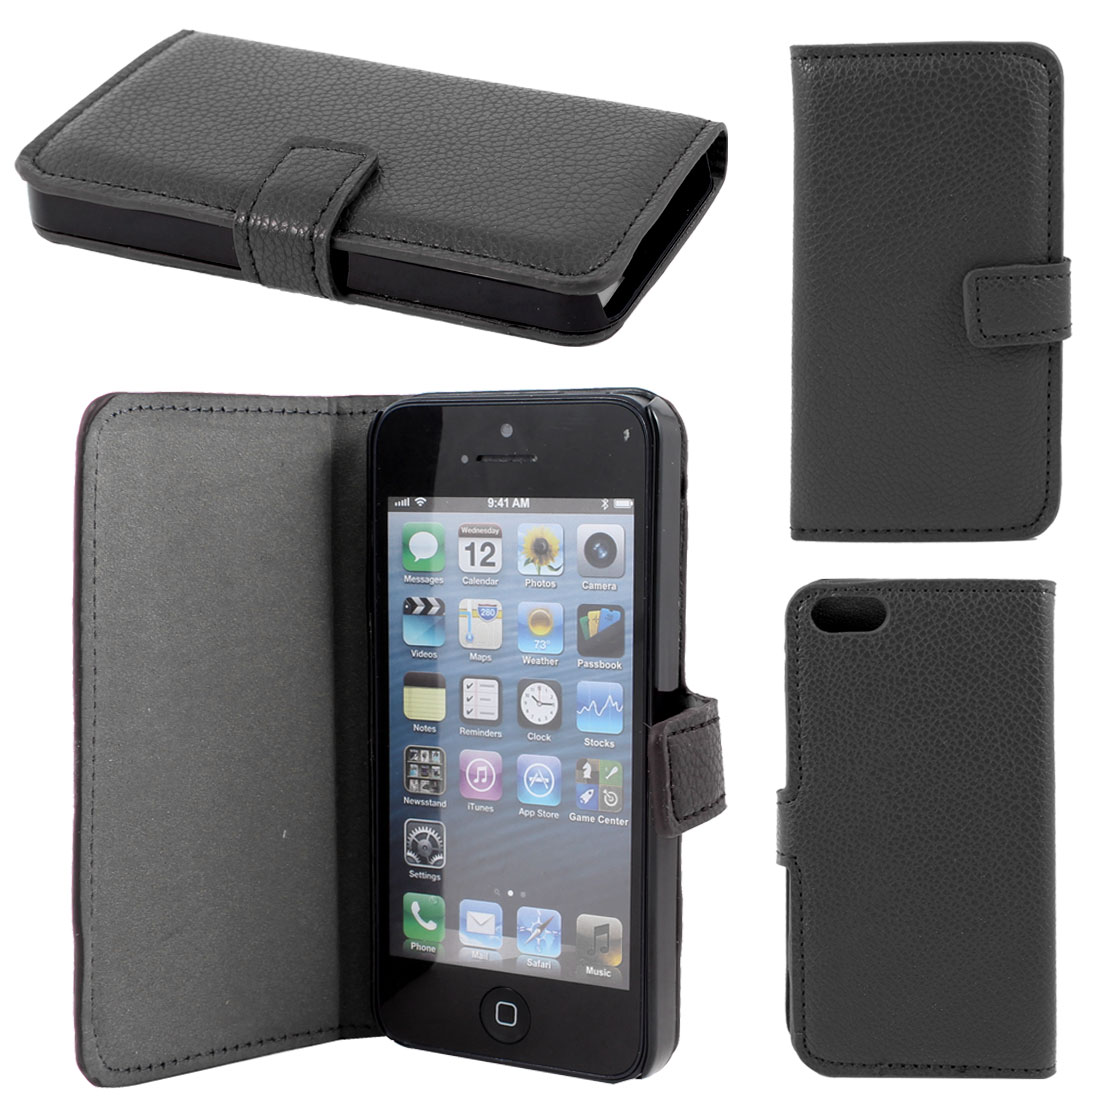 Black Lichee Pattern Faux Leather Flip Case Cover for Apple iPhone 5 5G